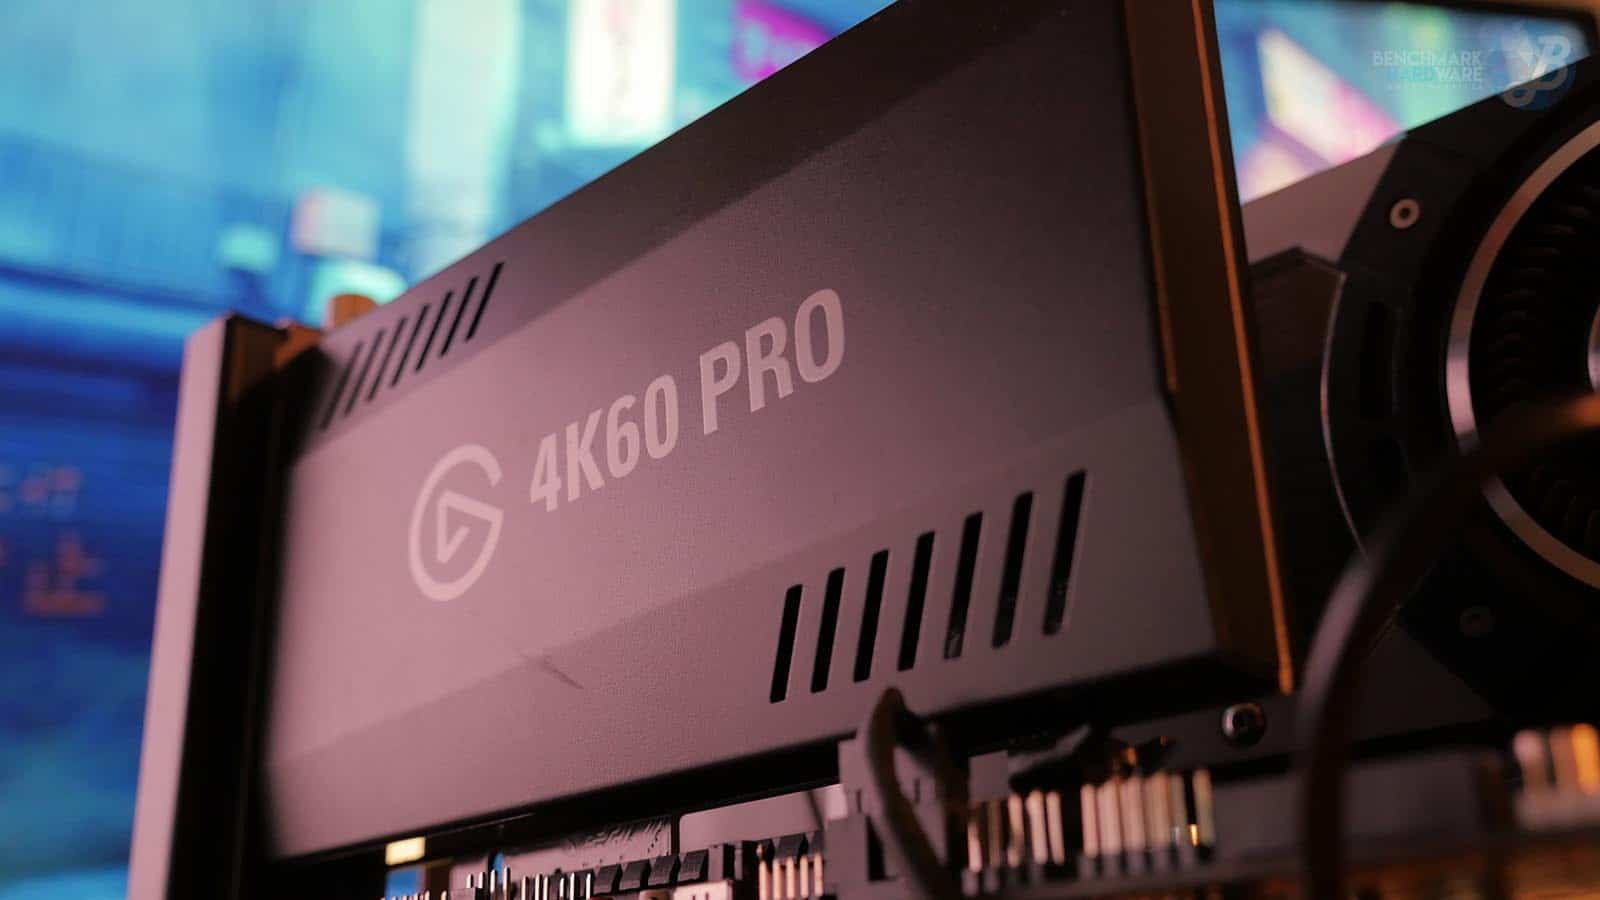 elgato 4K60 Pro - Review - Benchmarkhardware